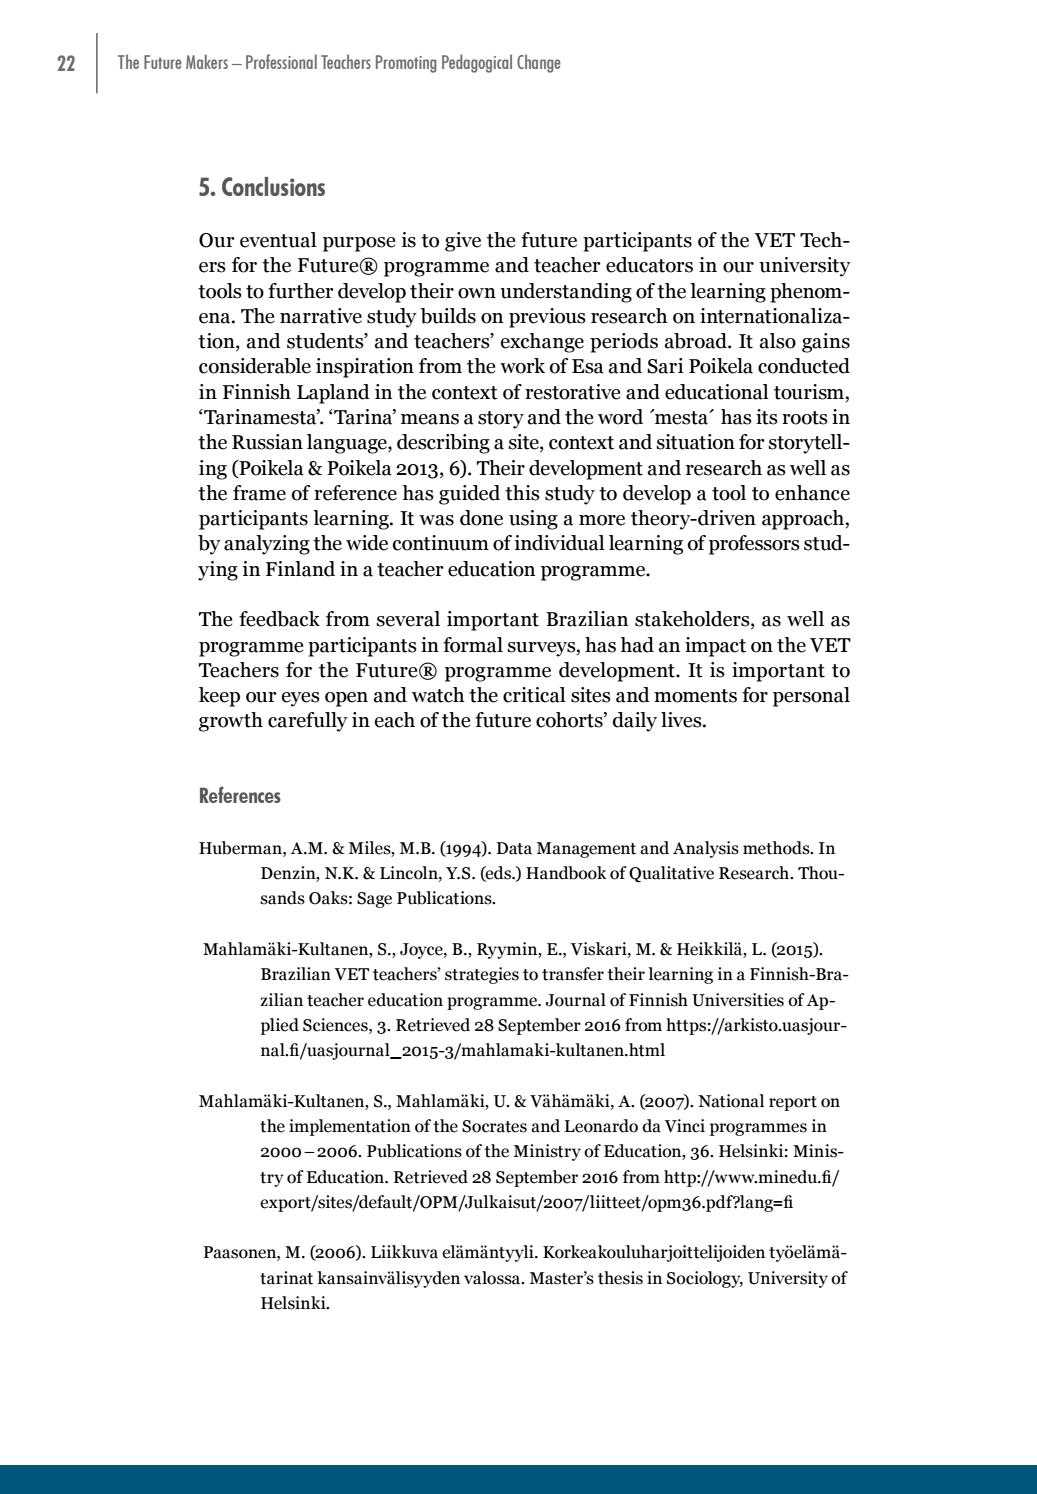 master thesis in sociology pdf